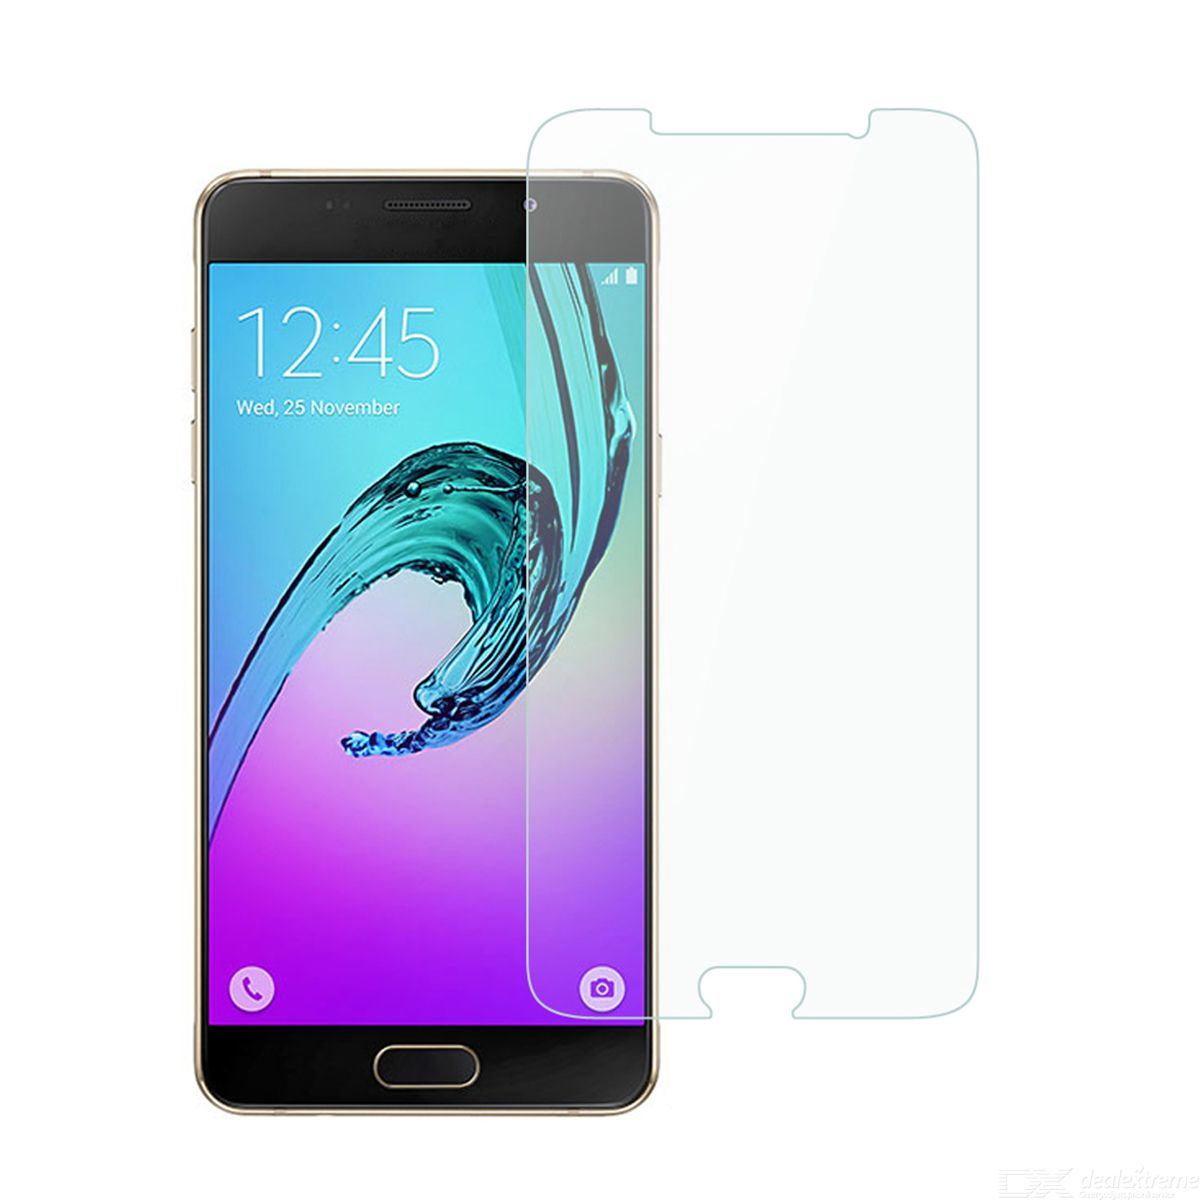 Dx coupon: Dayspirit Tempered Glass Screen Protector for Samsung Galaxy A5 (2016), A510